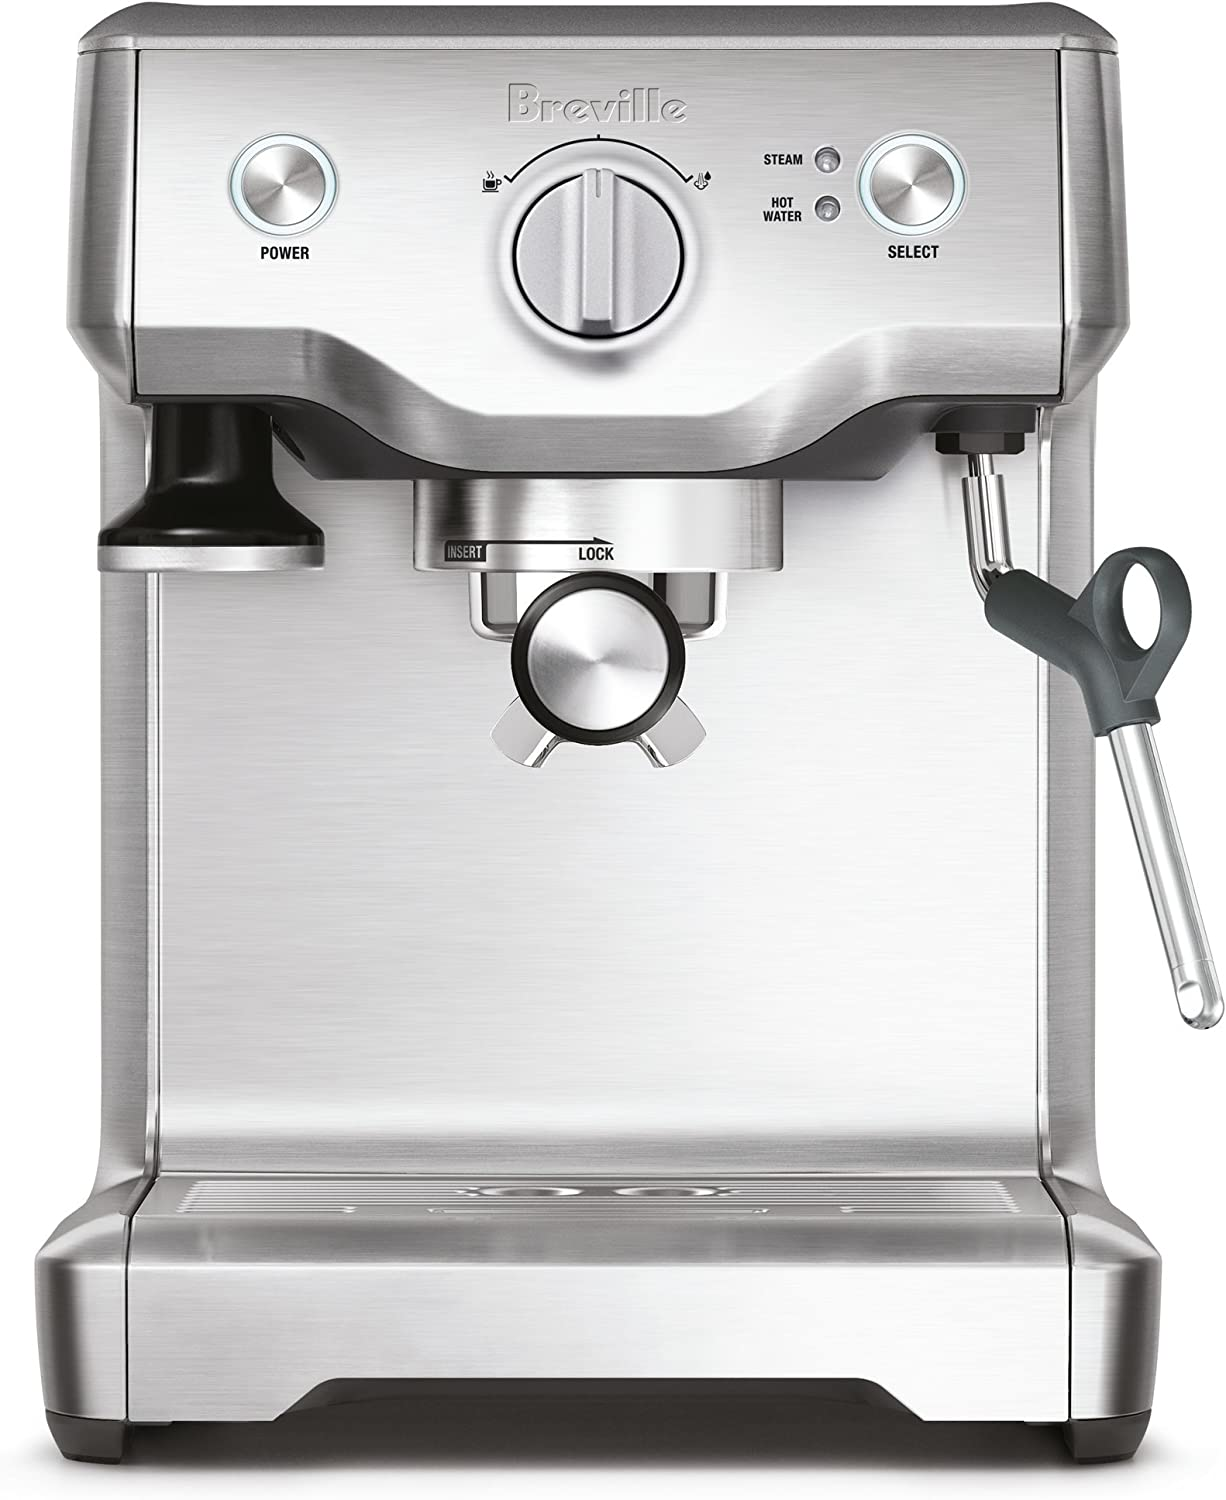 The Best Espresso Machine for Mom - 2021 Ratings & Reviews 5